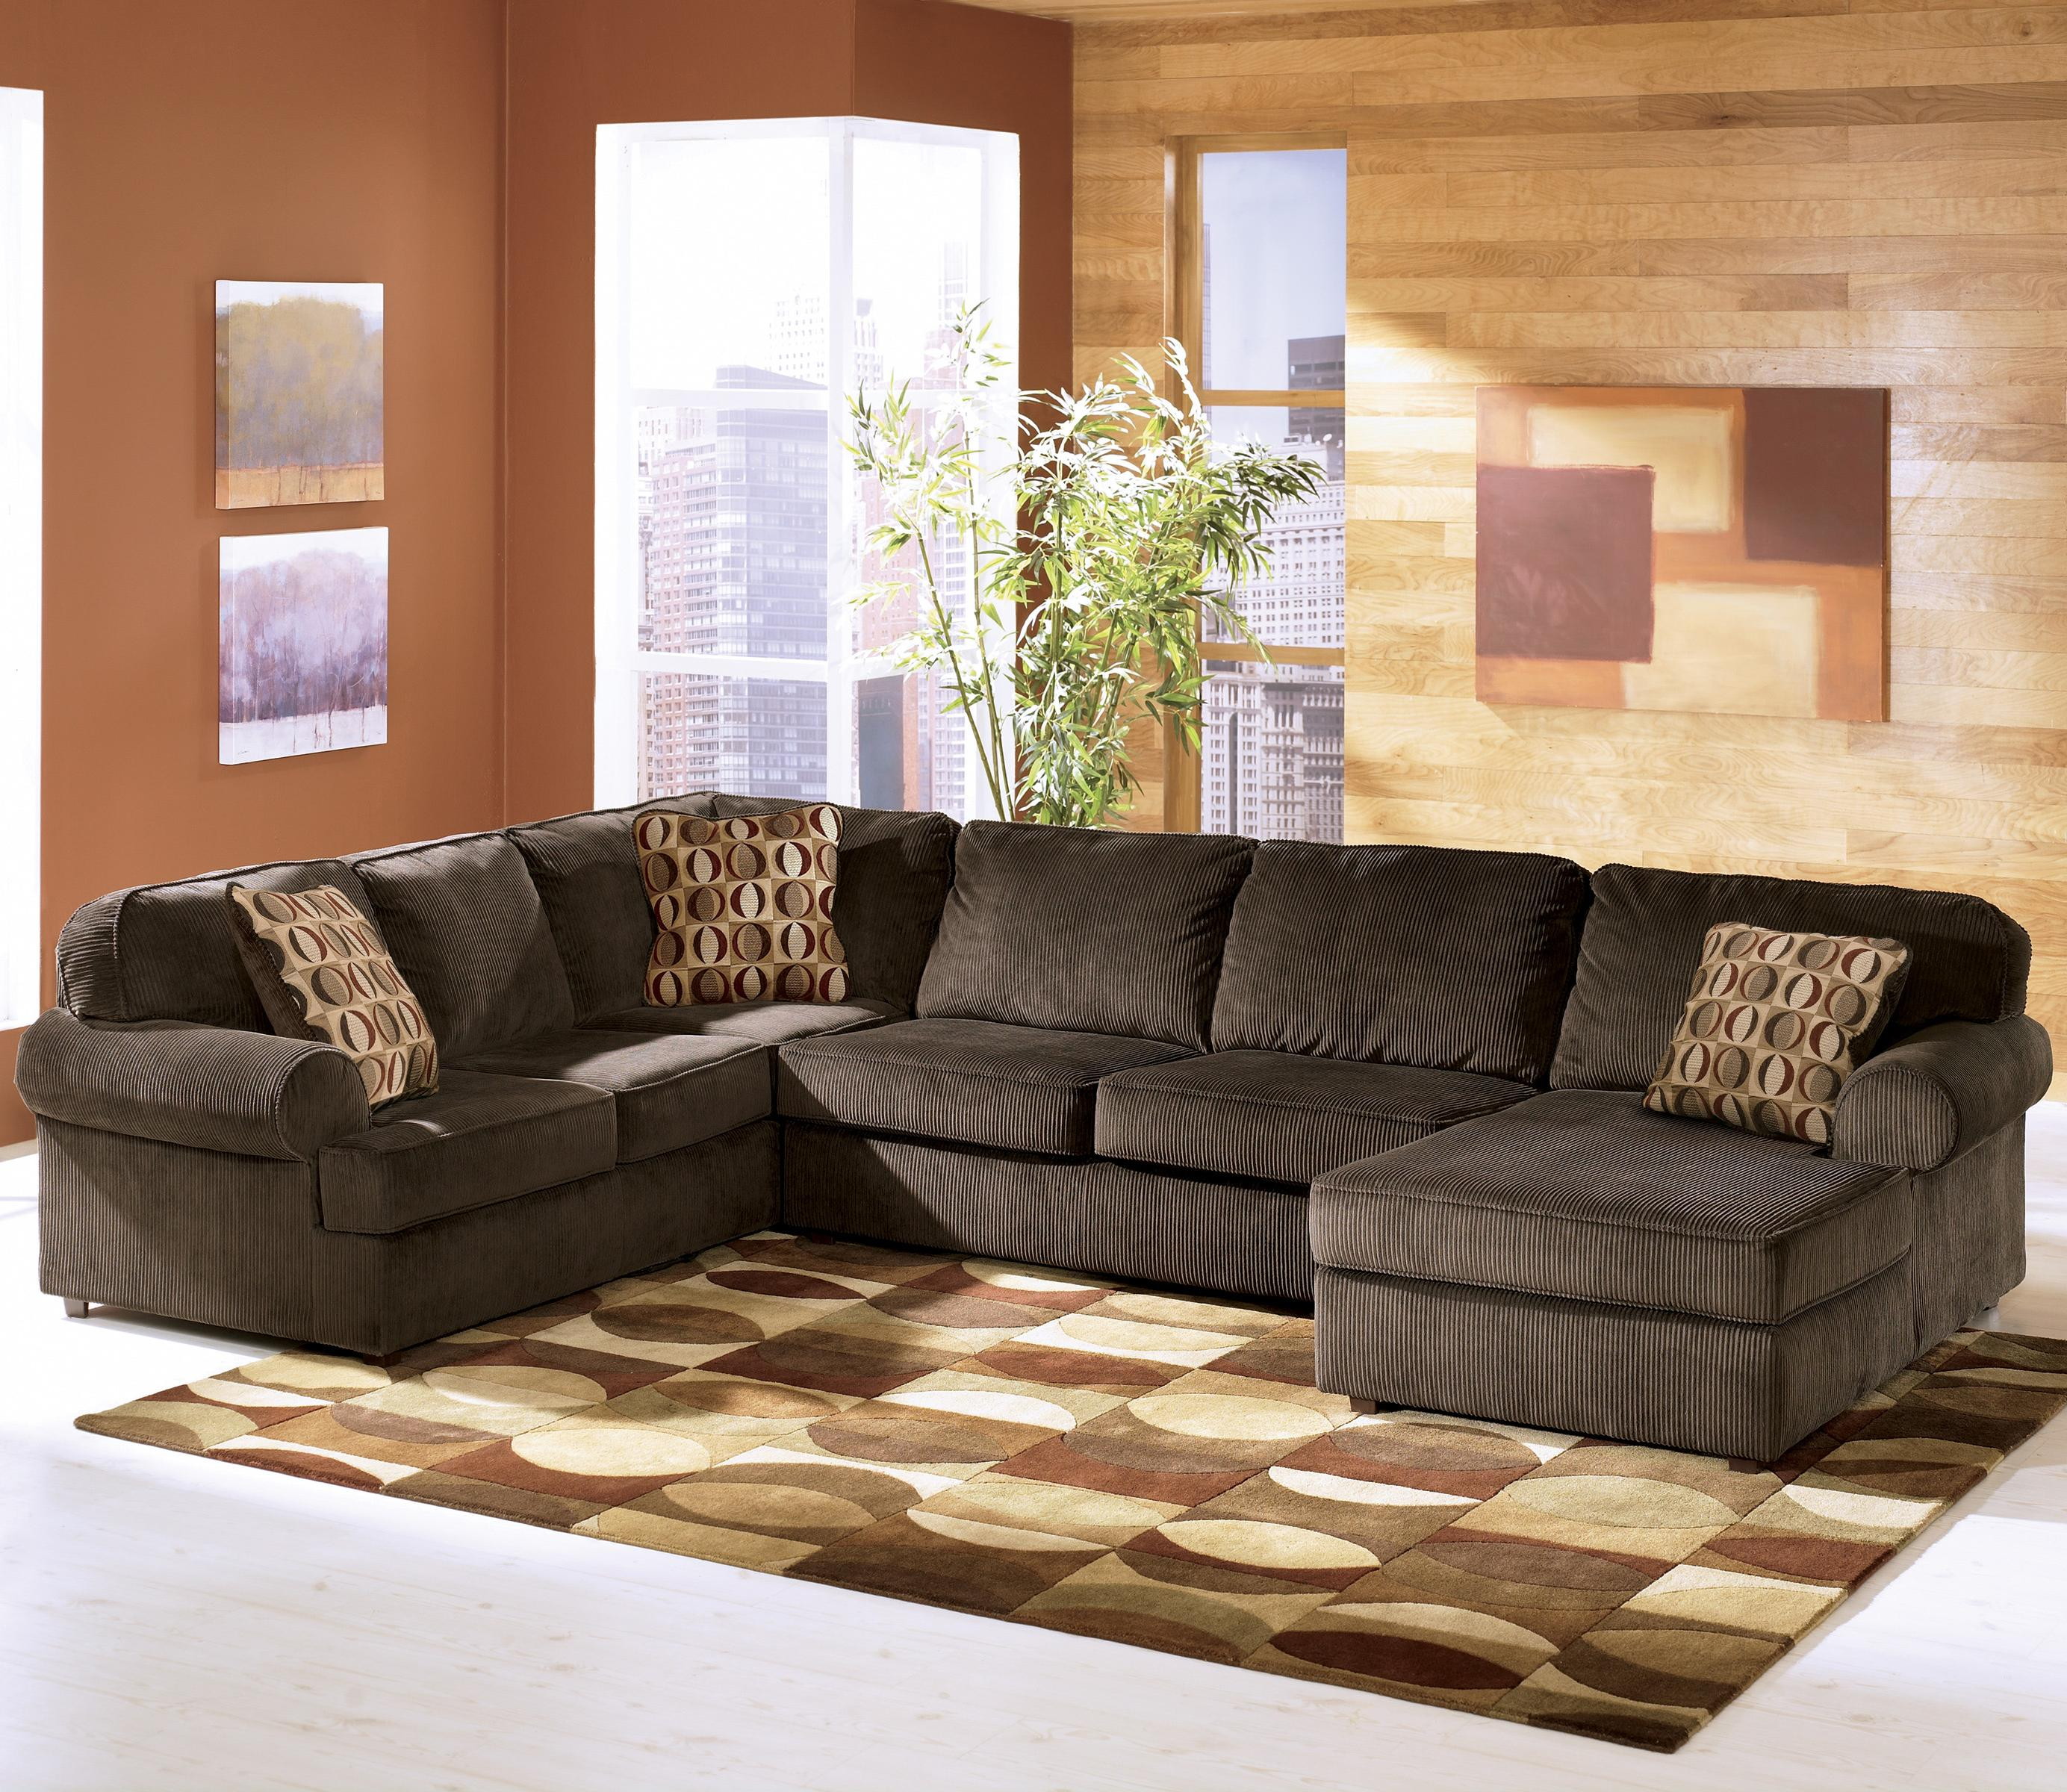 small couch living sofas fabric rooms room sectional full of for functional spaces size farmers furniture modern